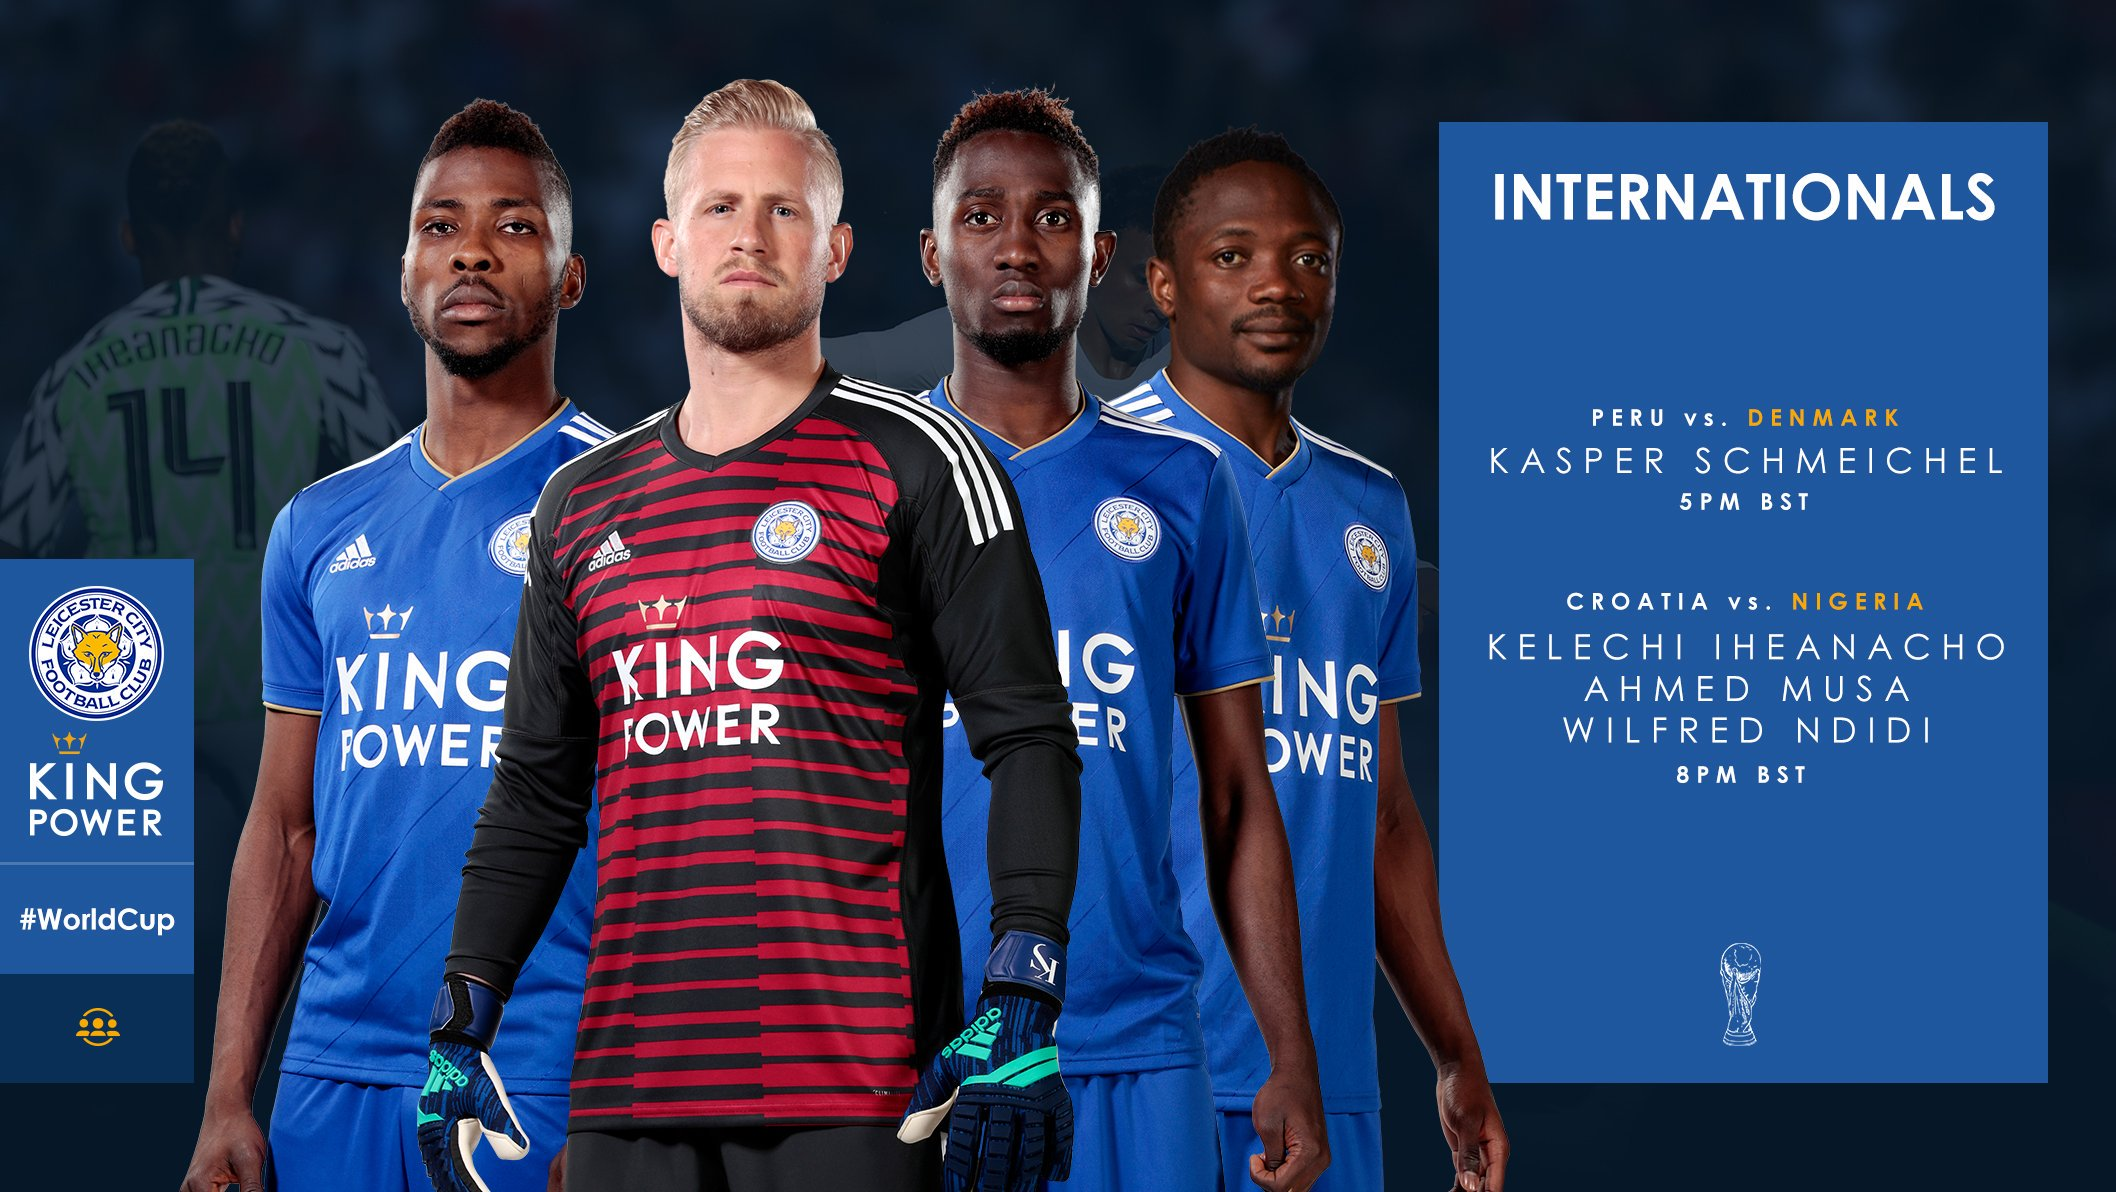 Leicester Back Iheanacho, Musa, Ndidi, Schmeichel For World Cup Success